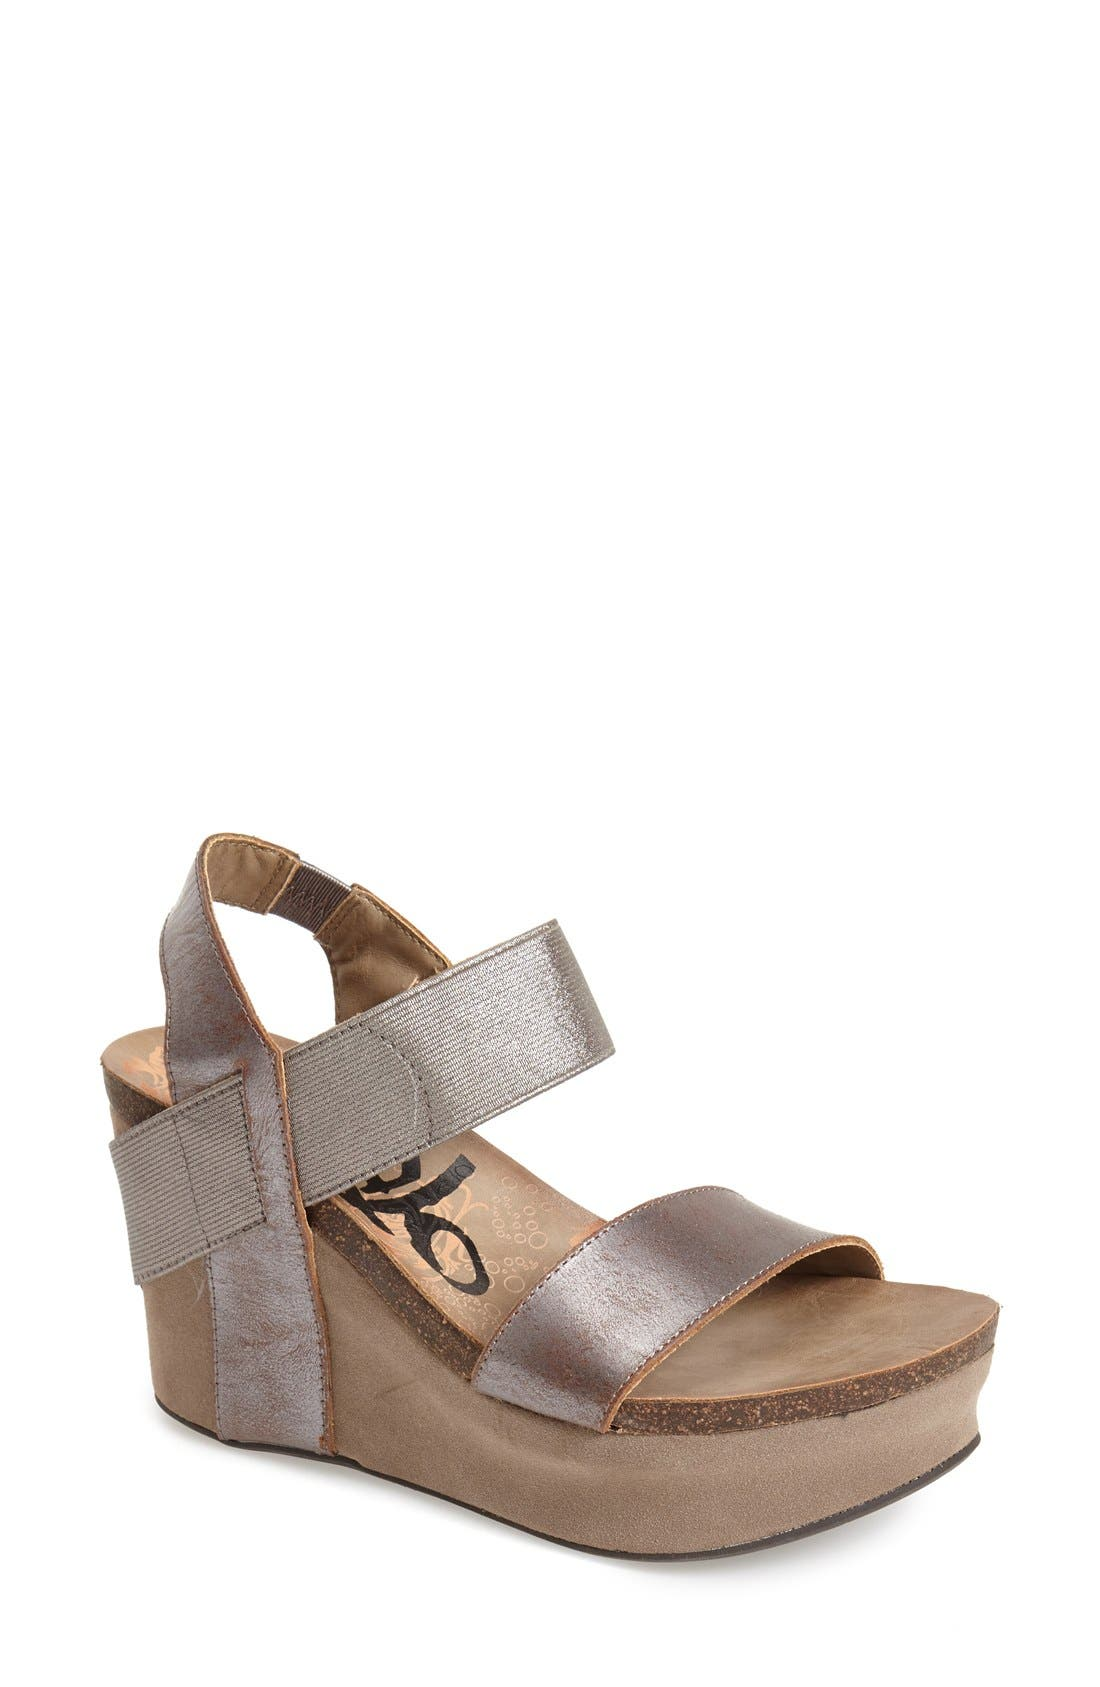 'Bushnell' Wedge Sandal,                             Main thumbnail 5, color,